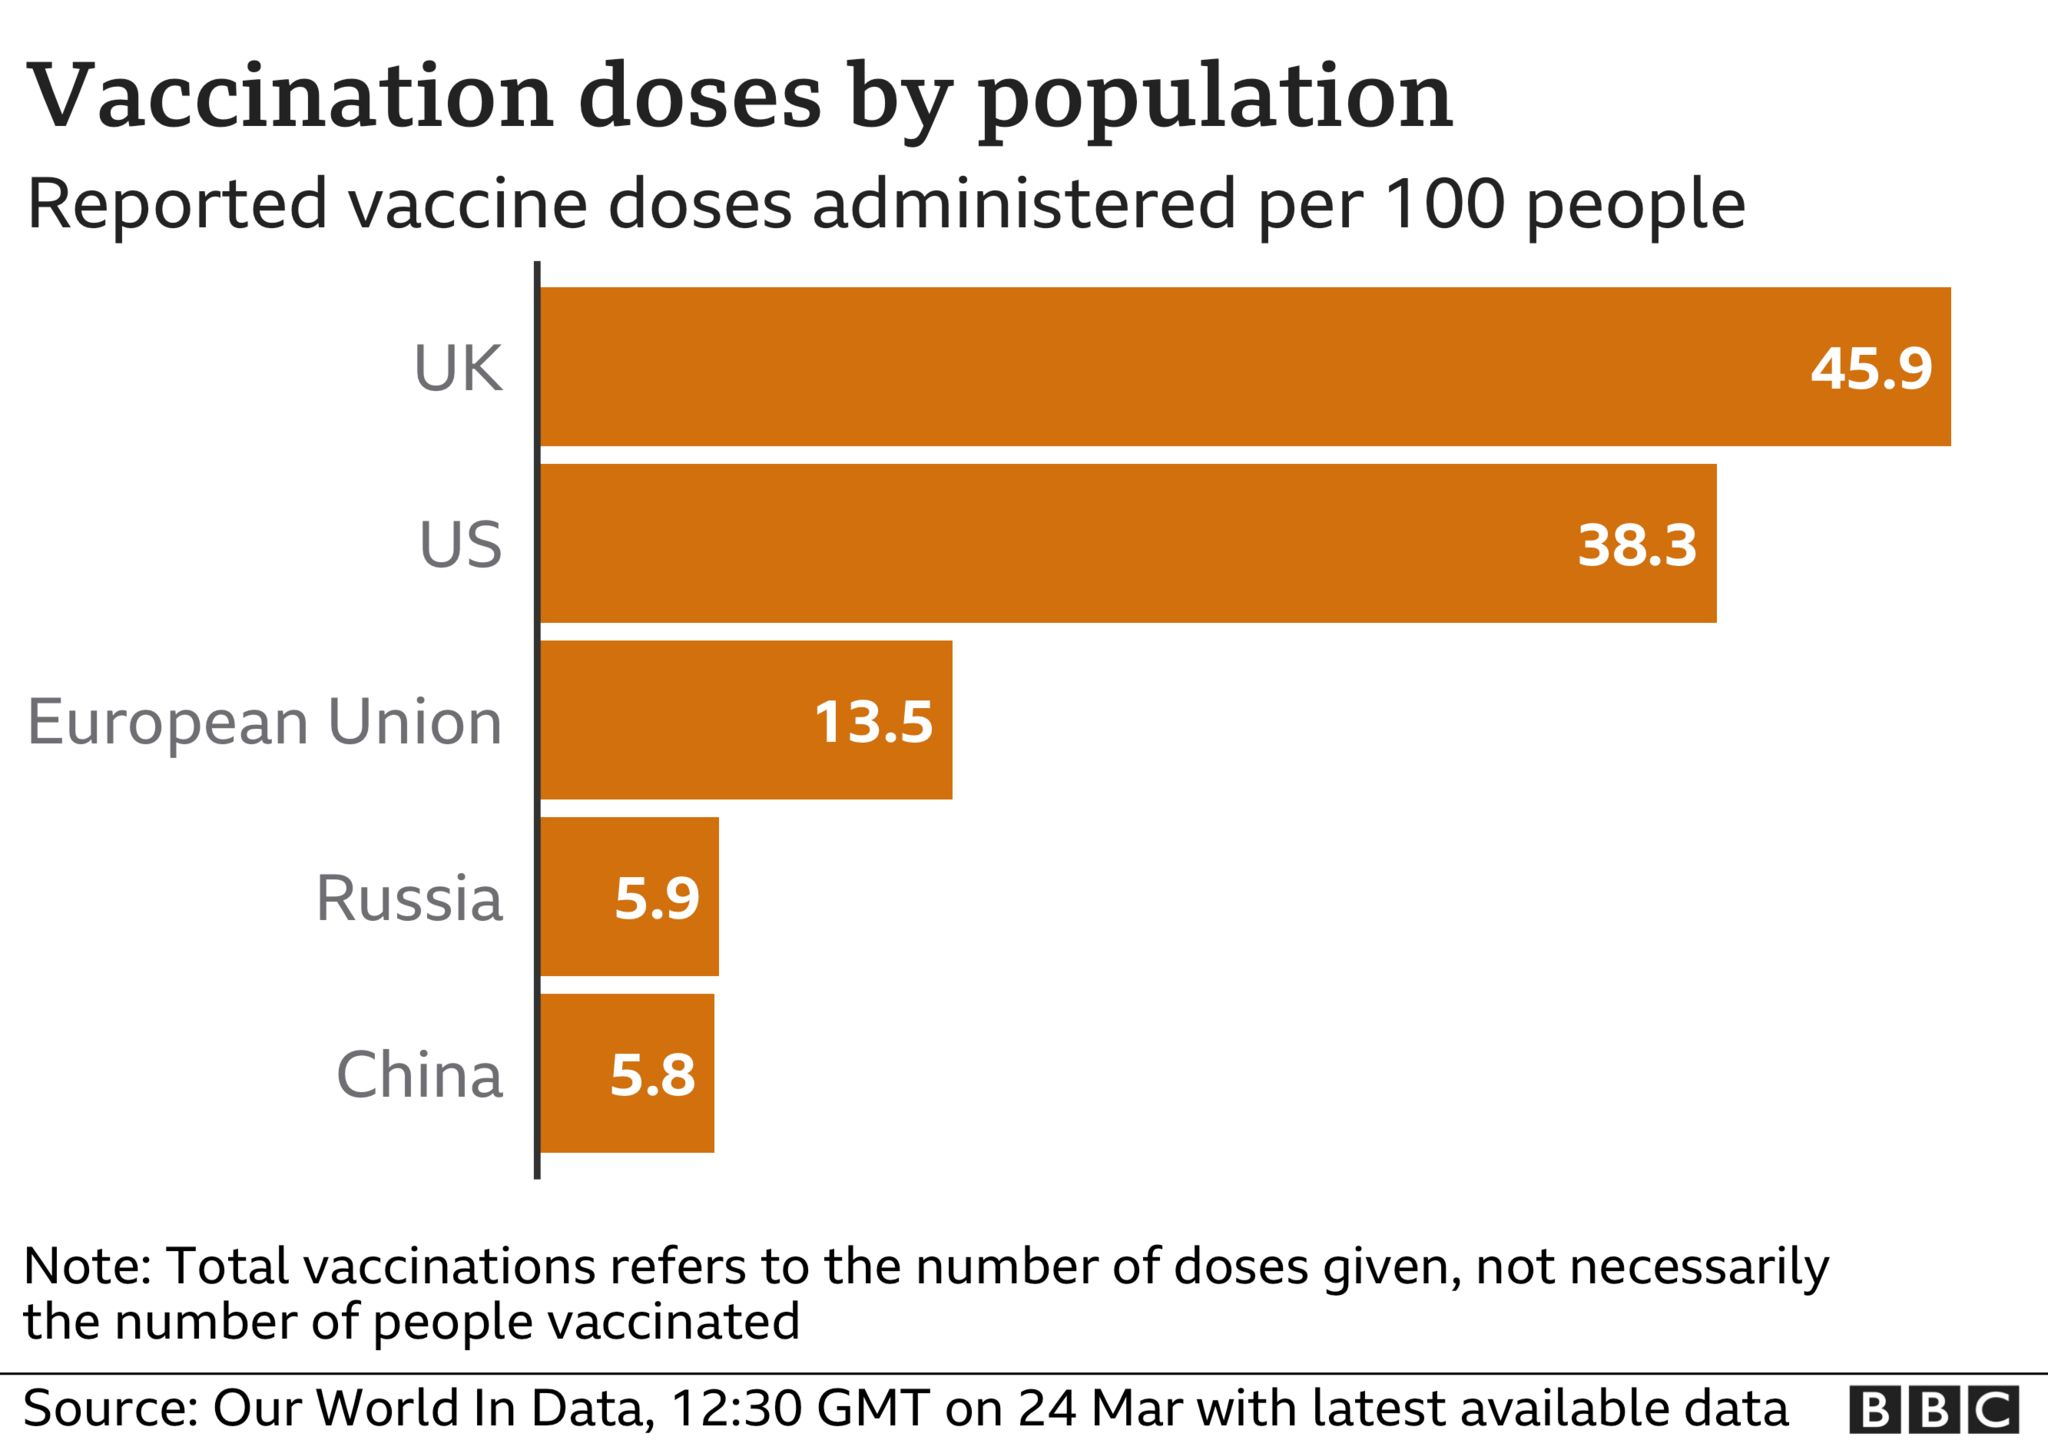 Chart showing the number of doses administered in the UK, US, EU, China and Russia